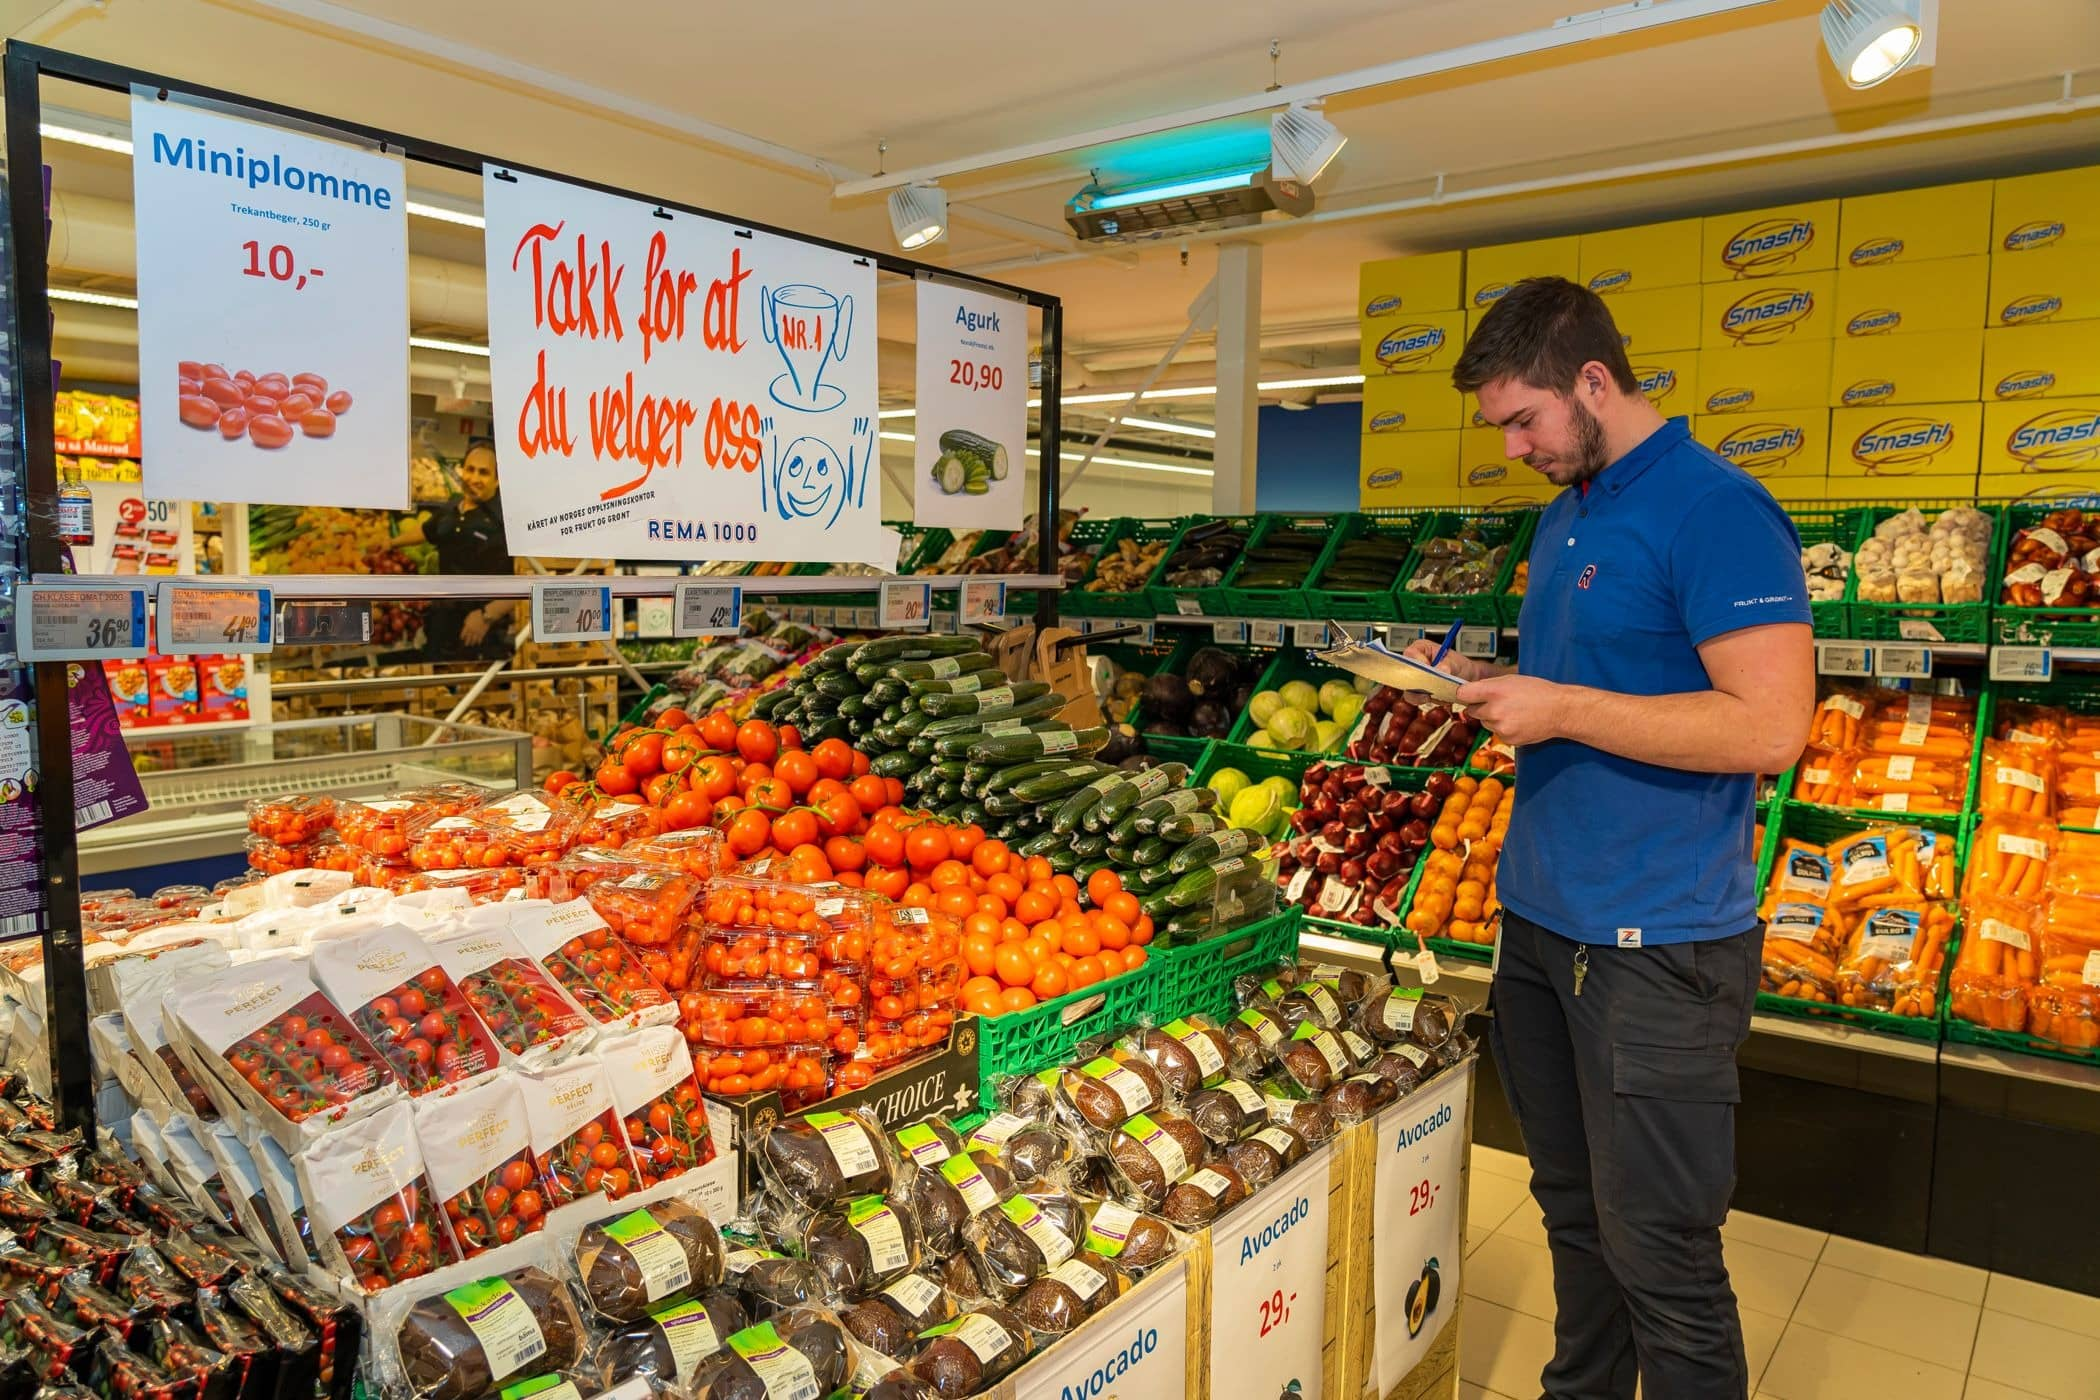 Convenience food, Grocery store, Natural foods, Trade, Marketplace, Retail, Selling, Supermarket